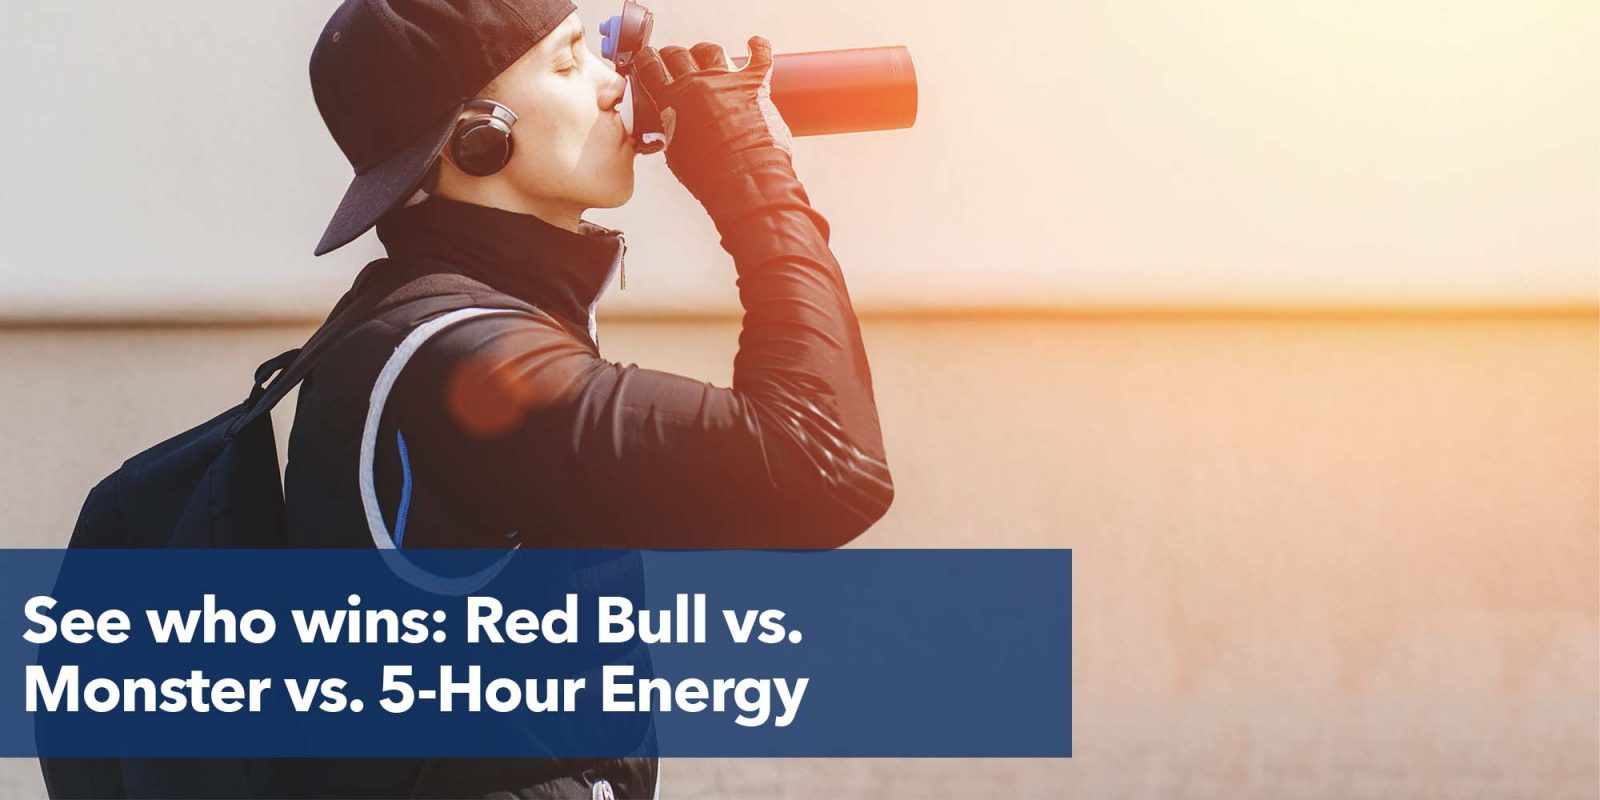 See who wins: Red Bull vs. Monster vs. 5-Hour Energy.